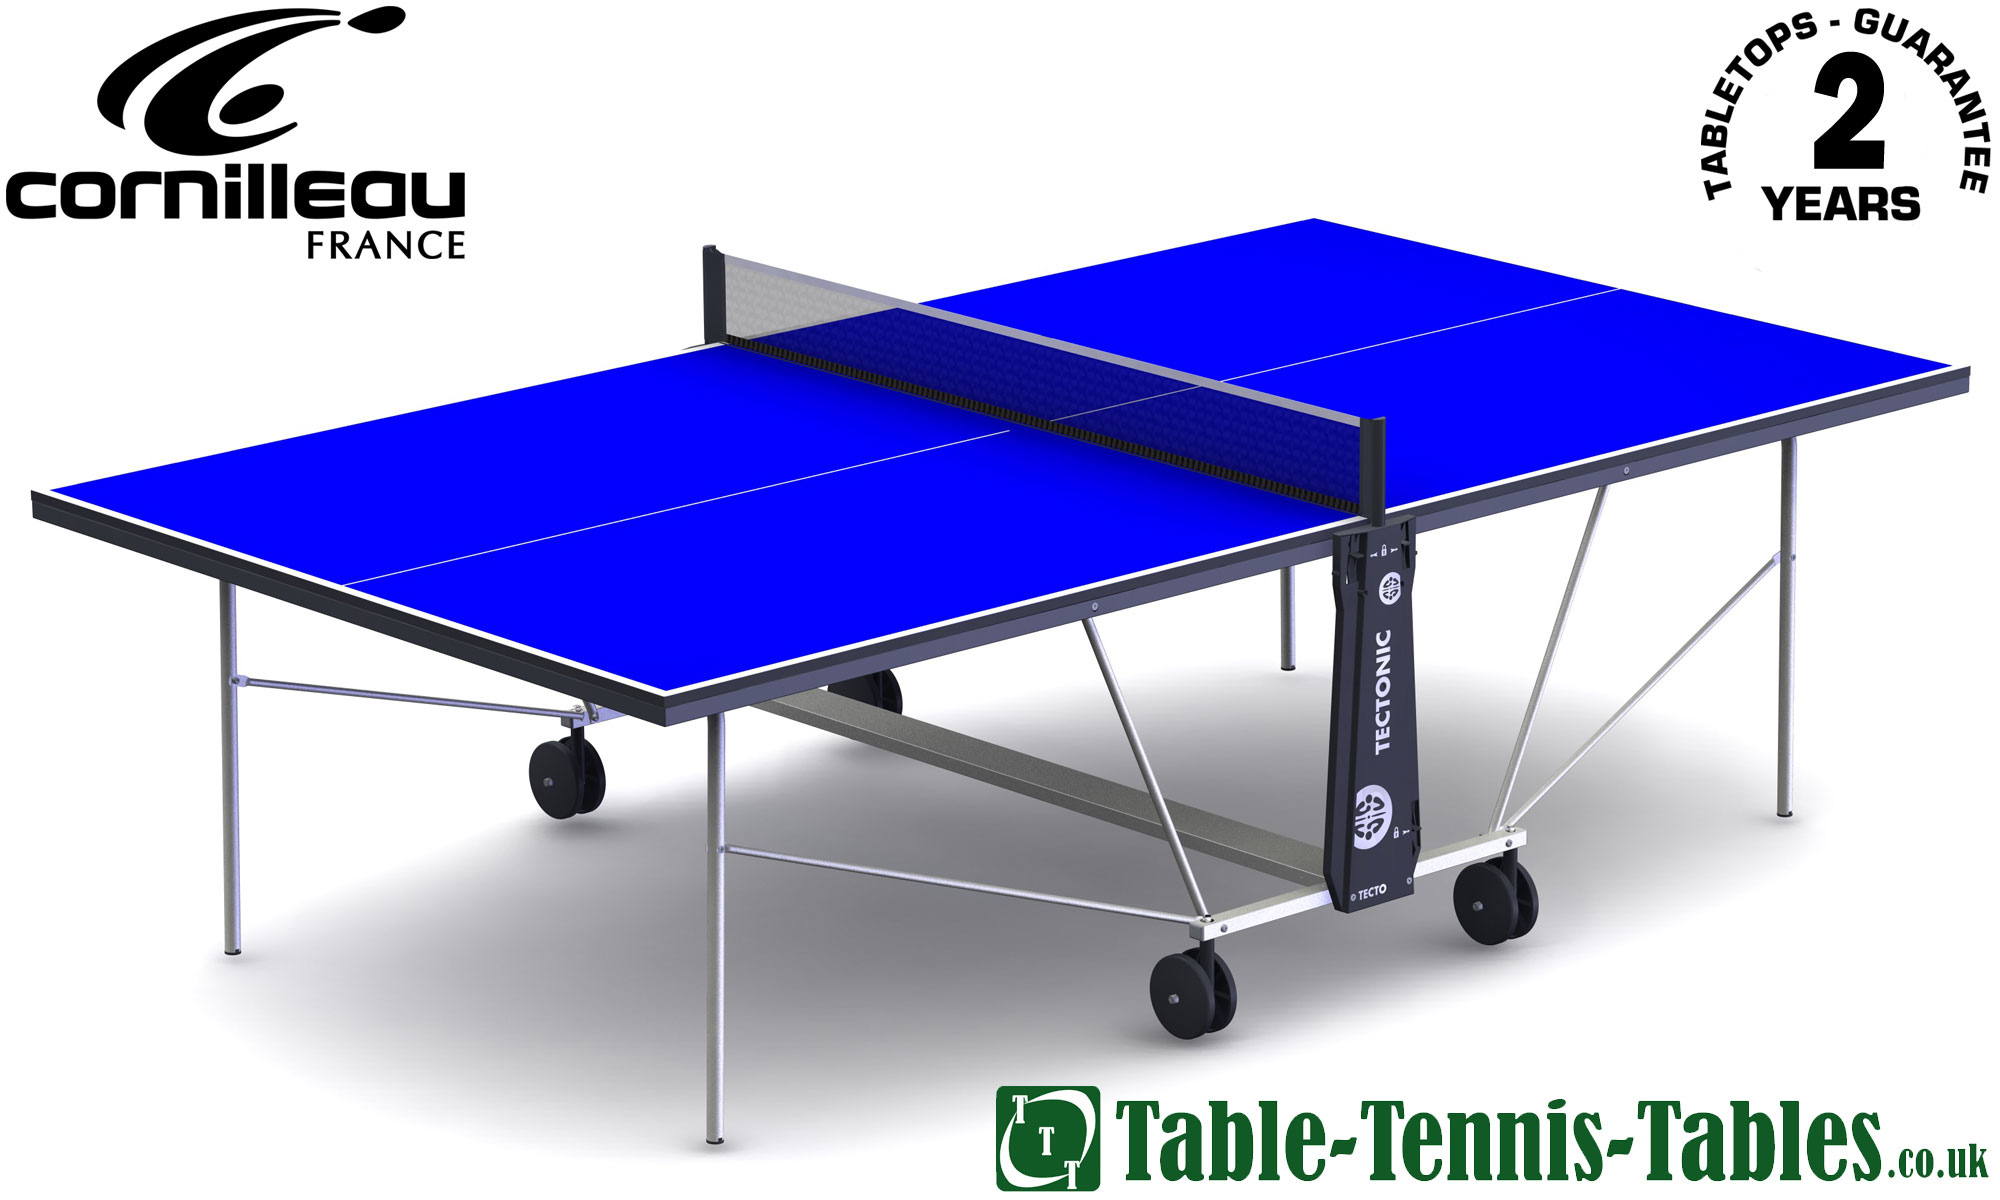 Cornilleau tectonic tecto 50 indoor table tennis table - Full size table tennis table dimensions ...